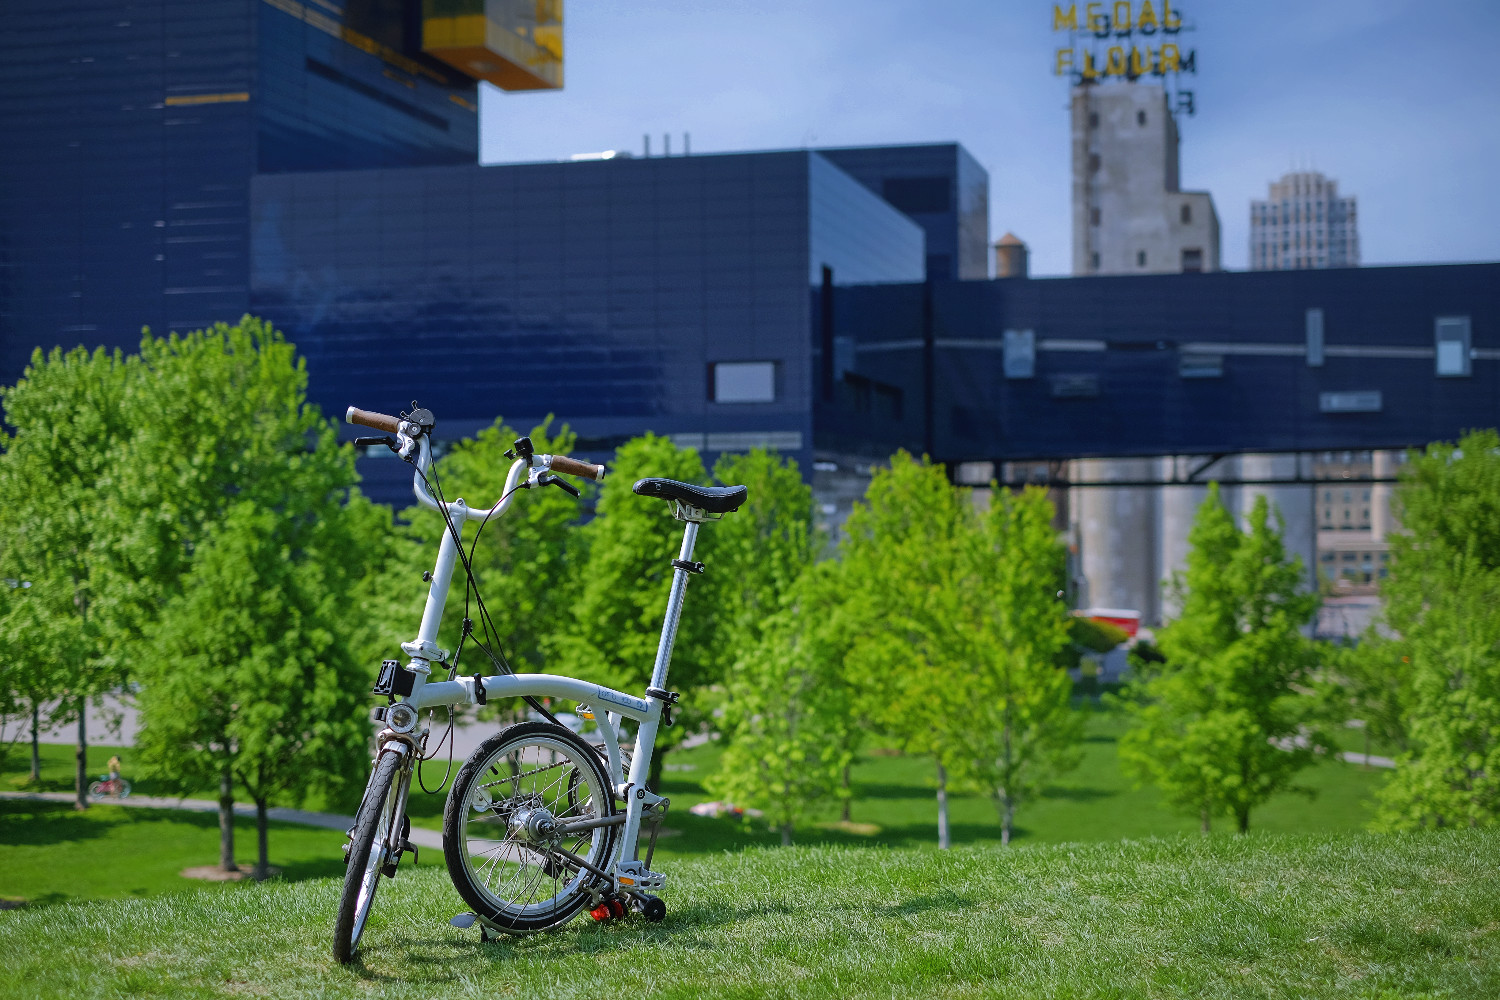 Perennial Cycle rents Brompton folding bikes for $45 daily.